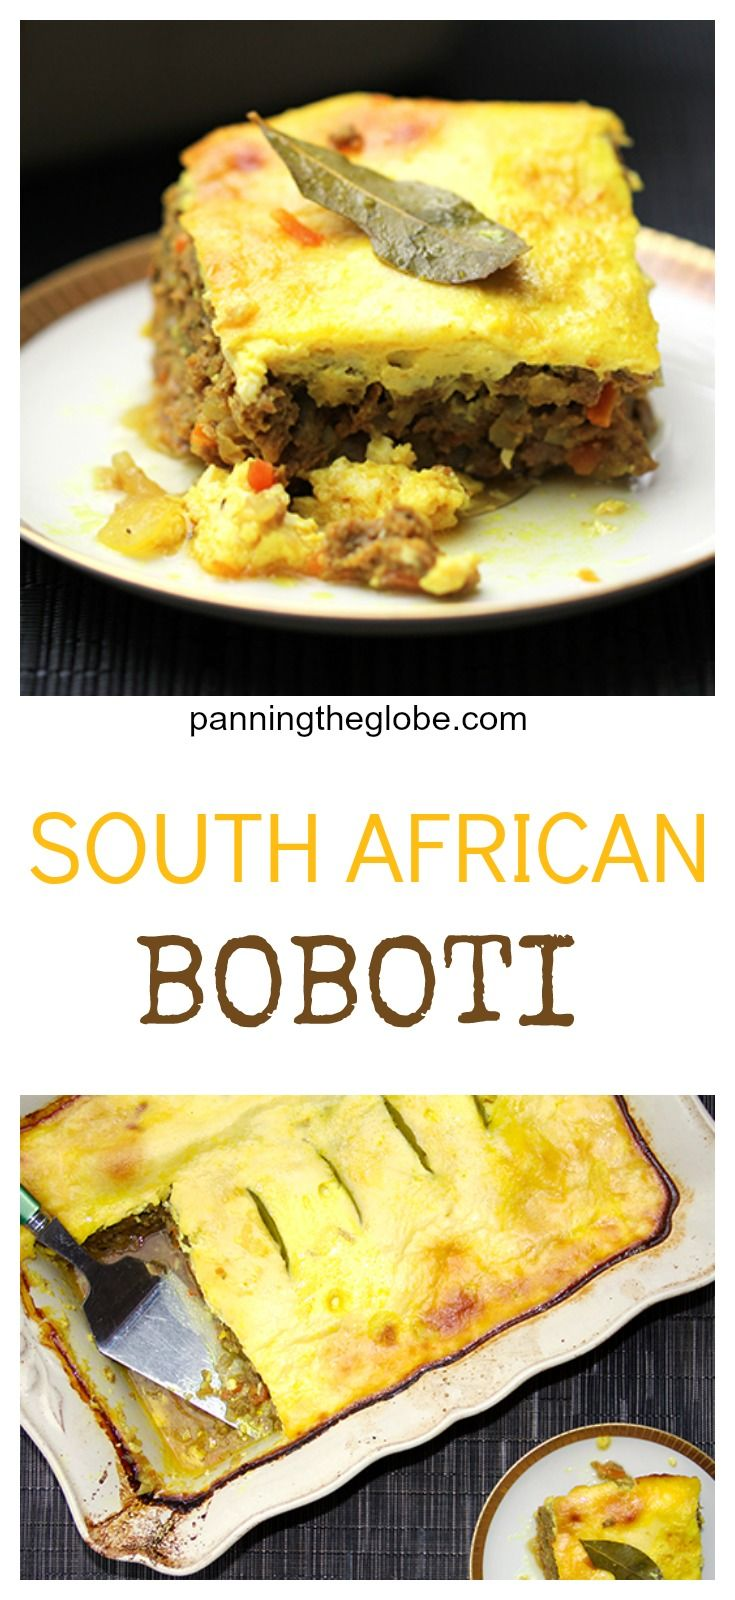 The most delicious meatloaf ever  • a national dish of South Africa • Panning The Globe